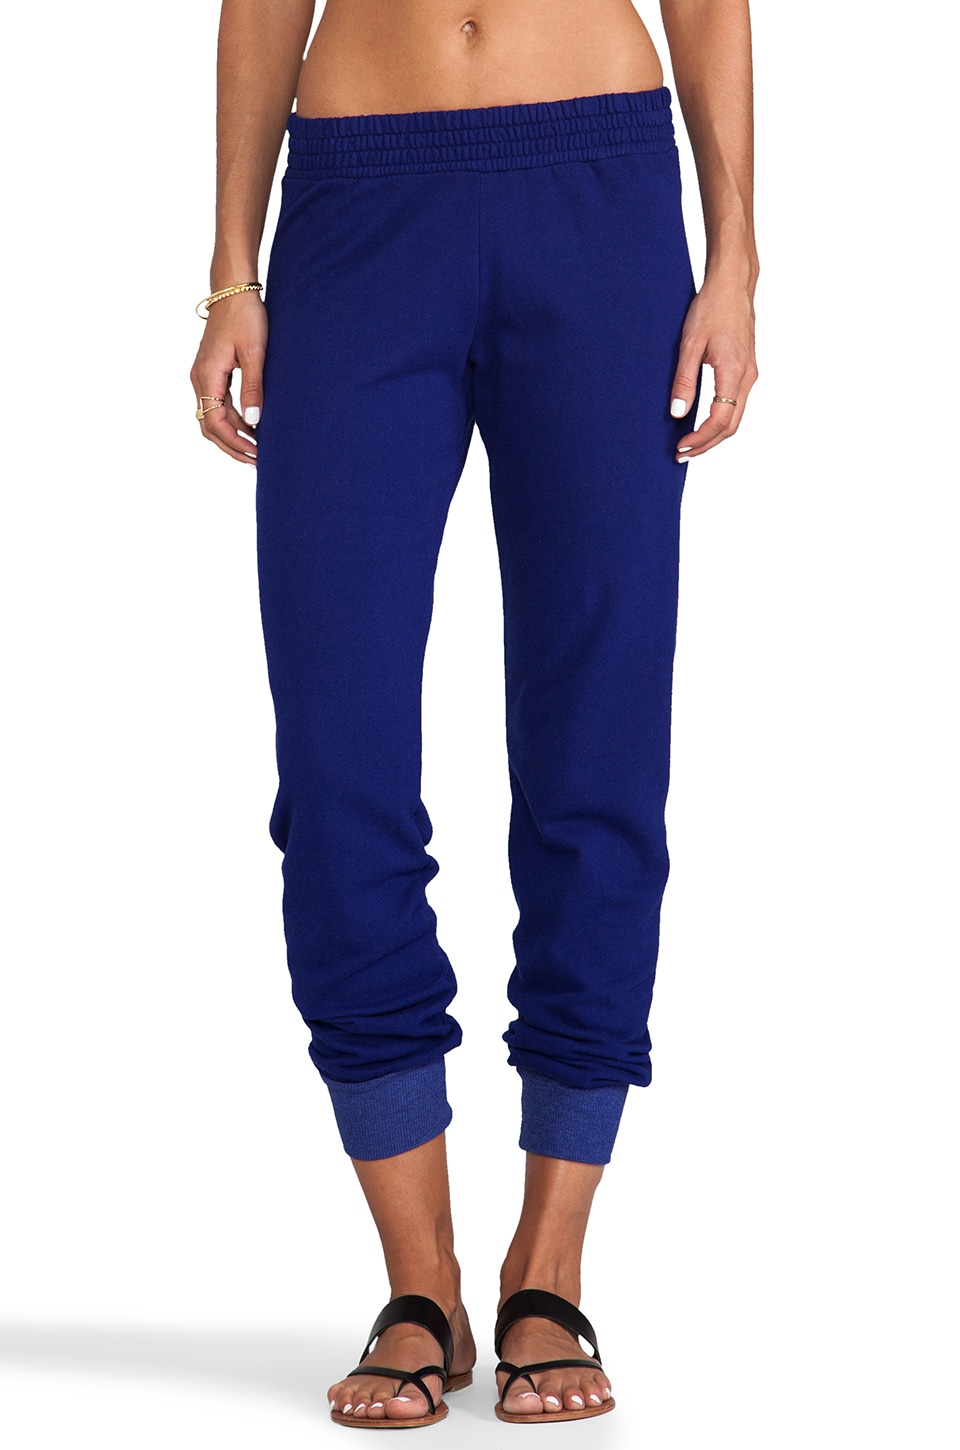 291 Slim Track Pant in Indigo